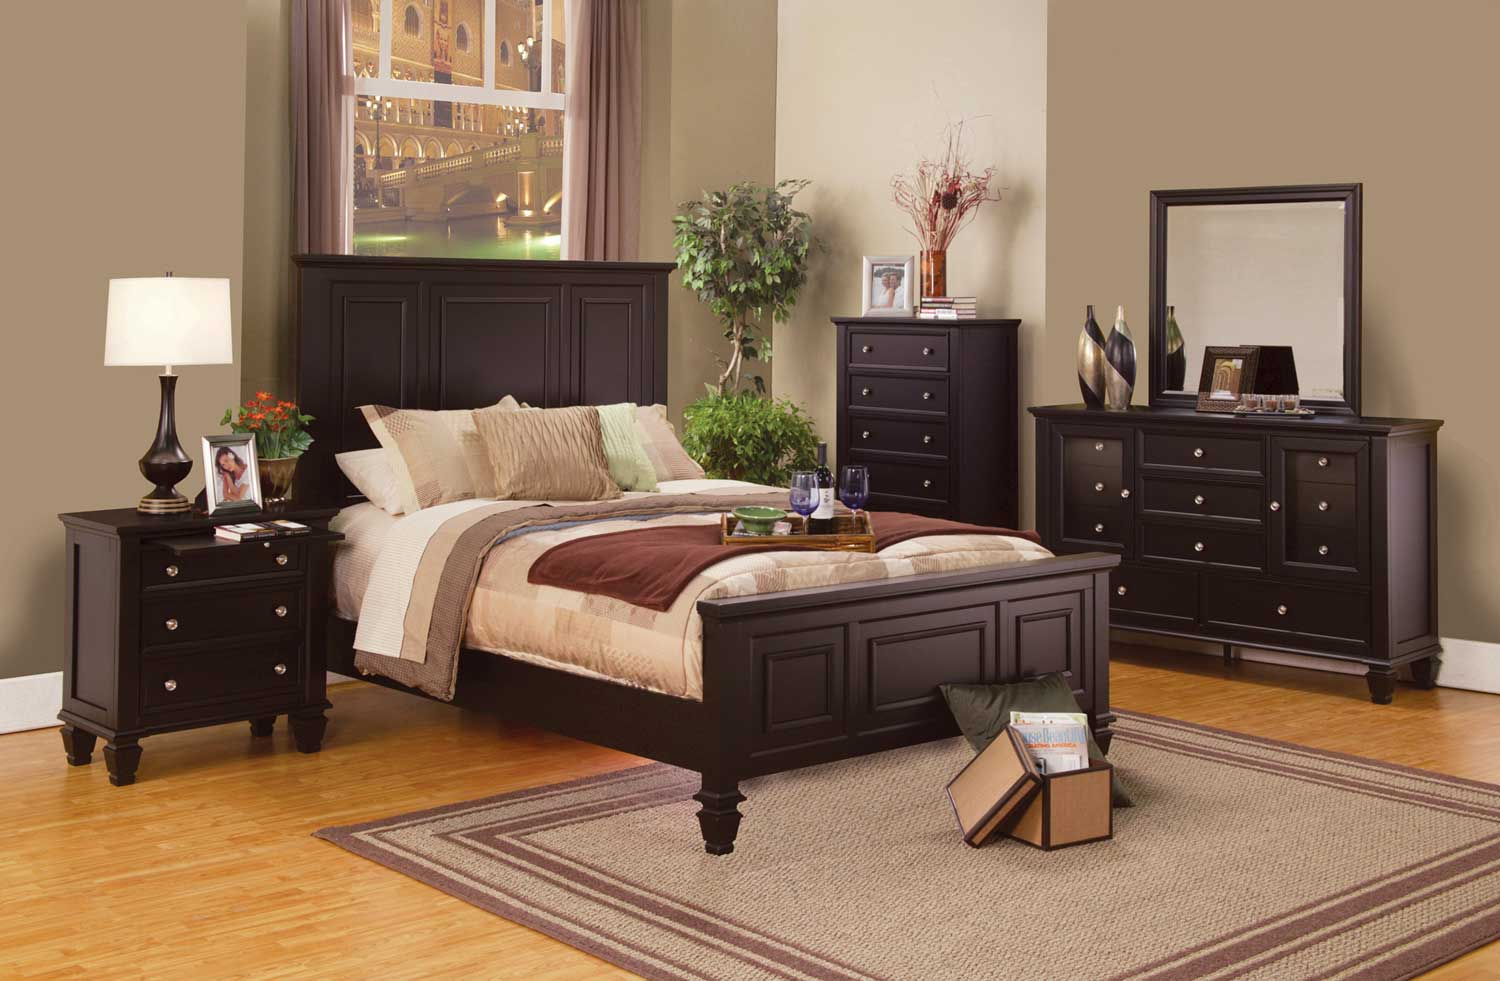 bedroom furniture - traditional bedroom set, contemporary bedroom